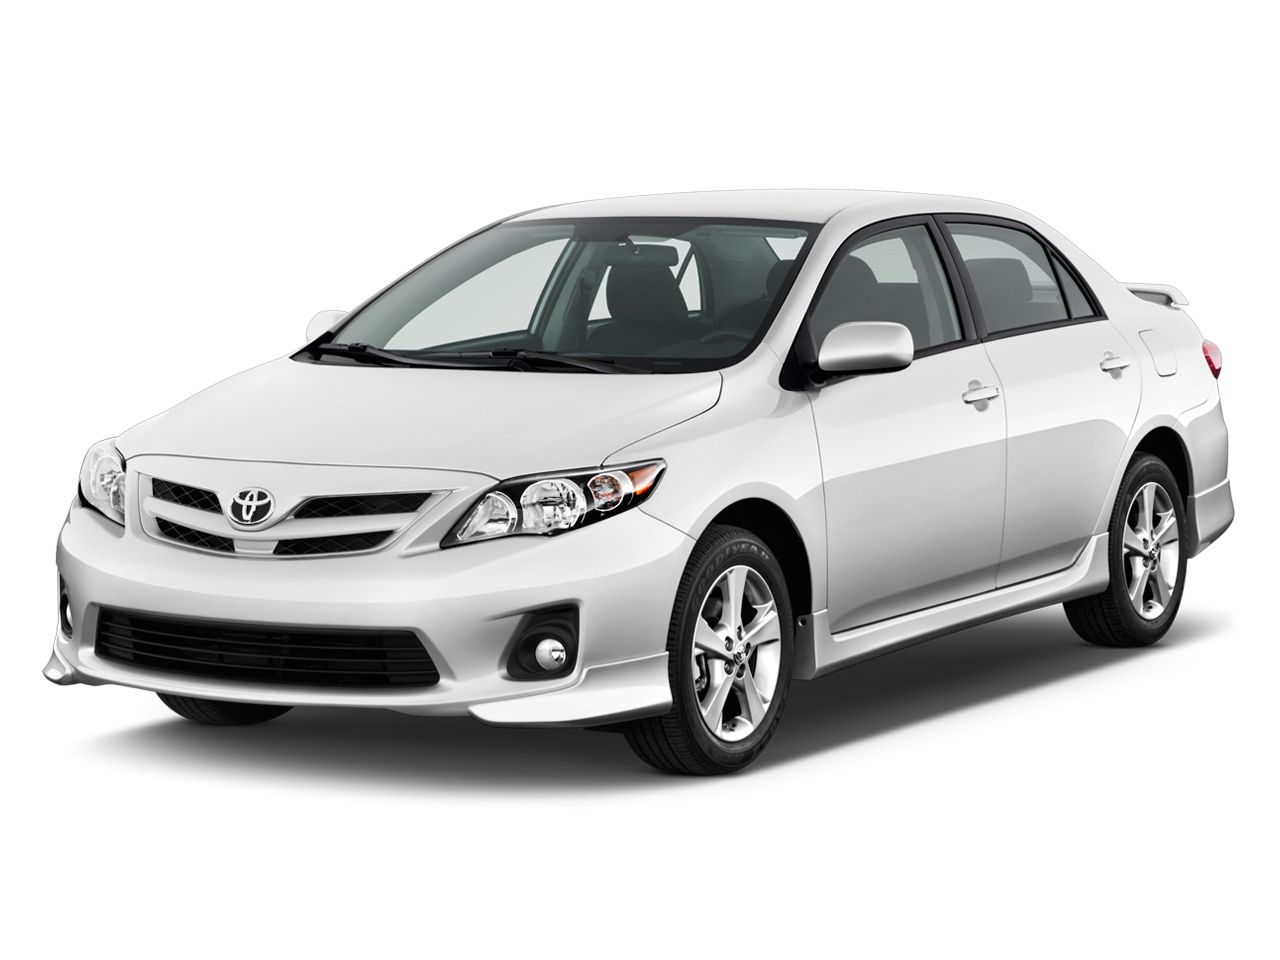 Toyota gsic toyota corolla nze141 zze142 zre141142143 ce14 schedule low cost vehicle rentals with zj rent a car karachi plan your next journey with discounted price rental cars and locate rent a car deals fandeluxe Choice Image